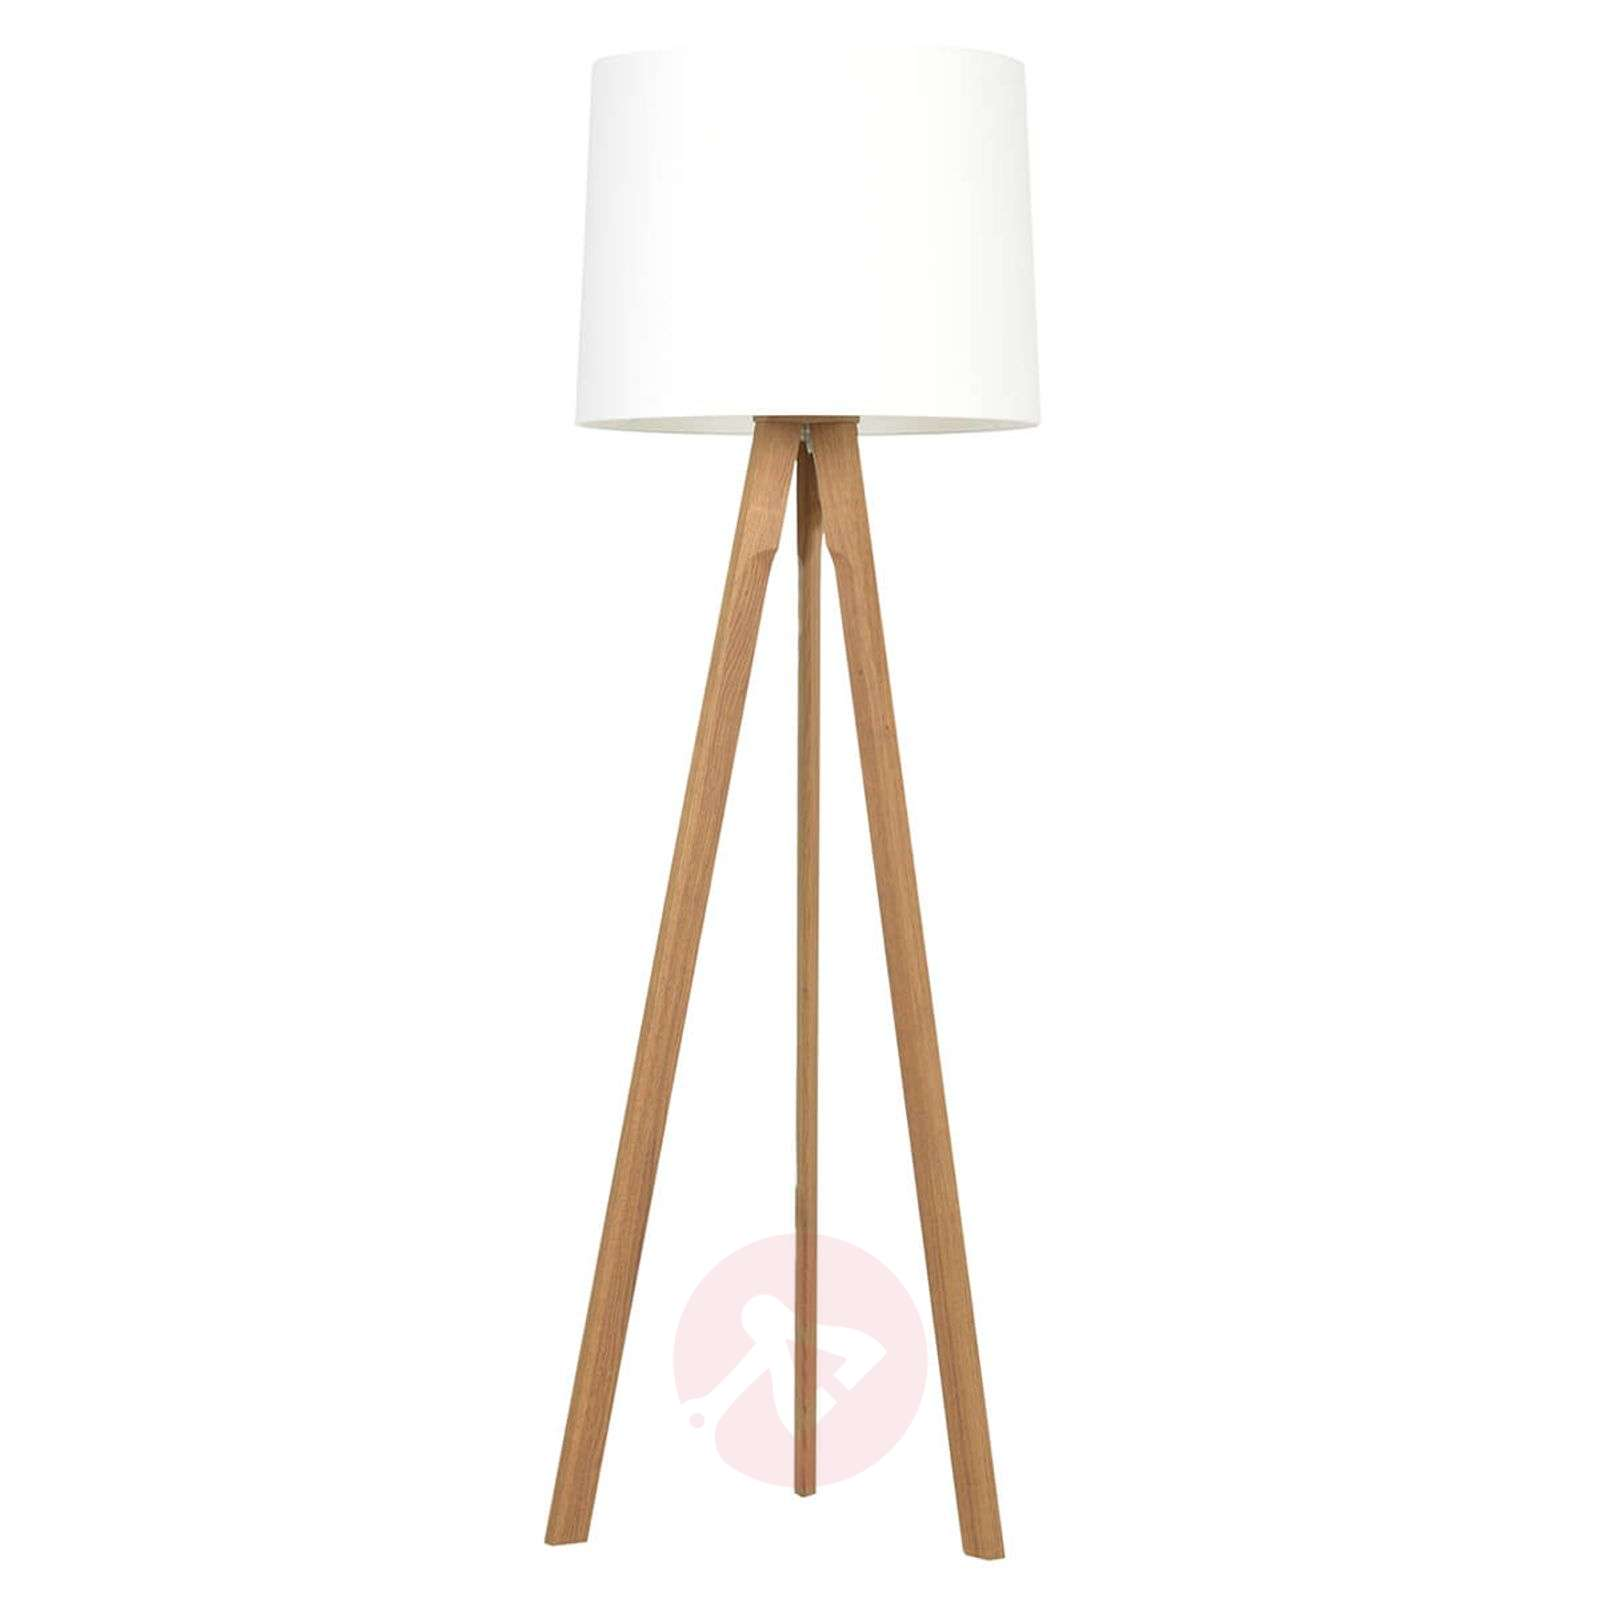 Tripod floor lamp Tre made of solid wood-4543027X-01